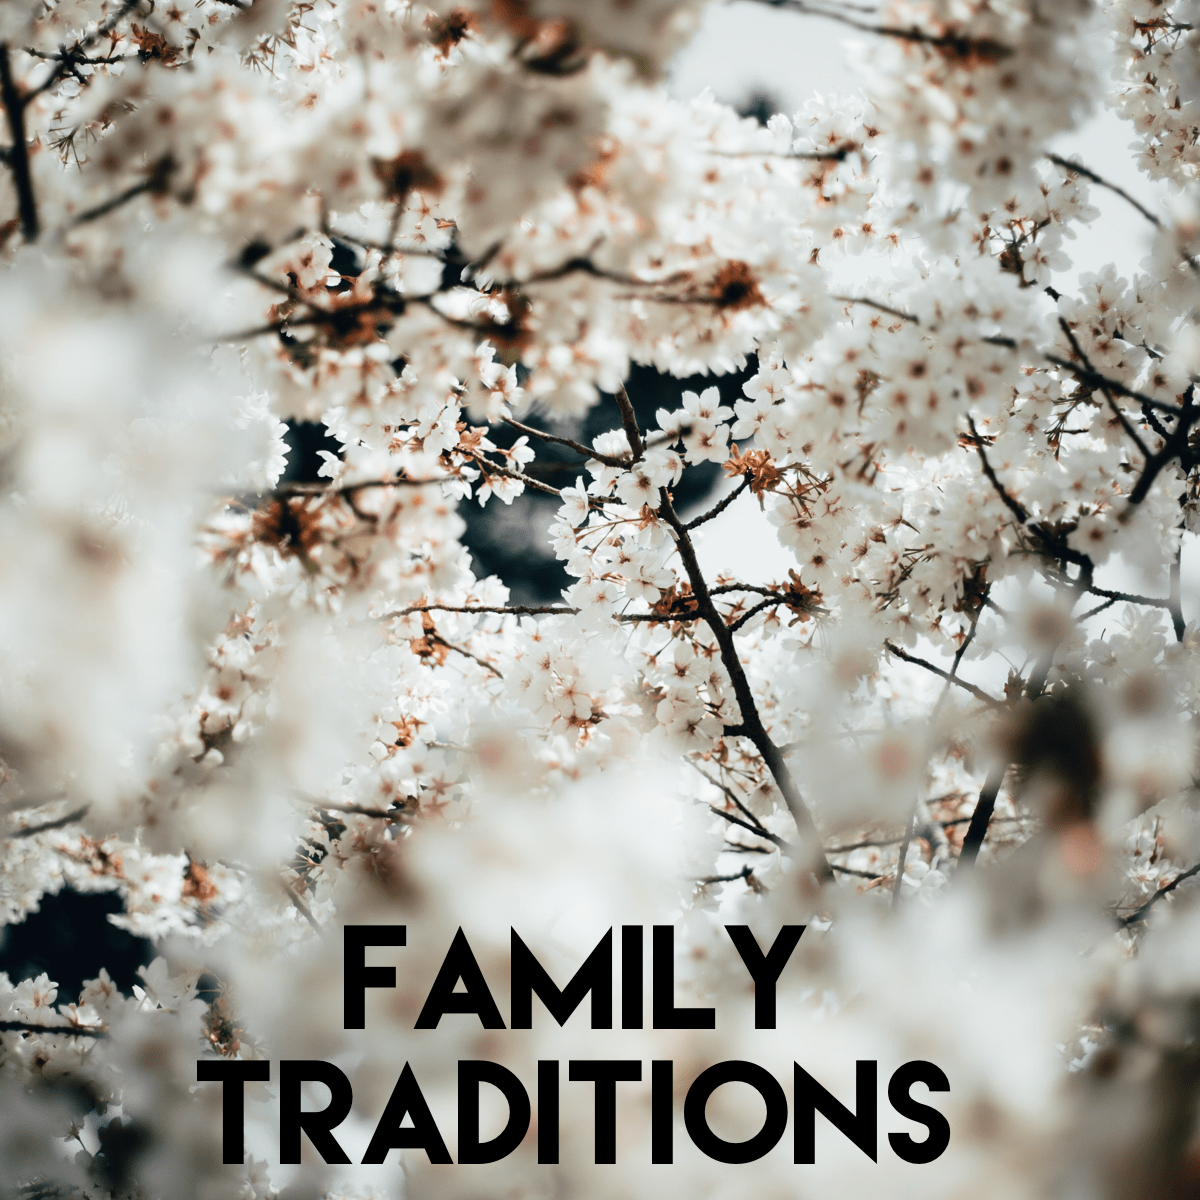 What's your family tradition?